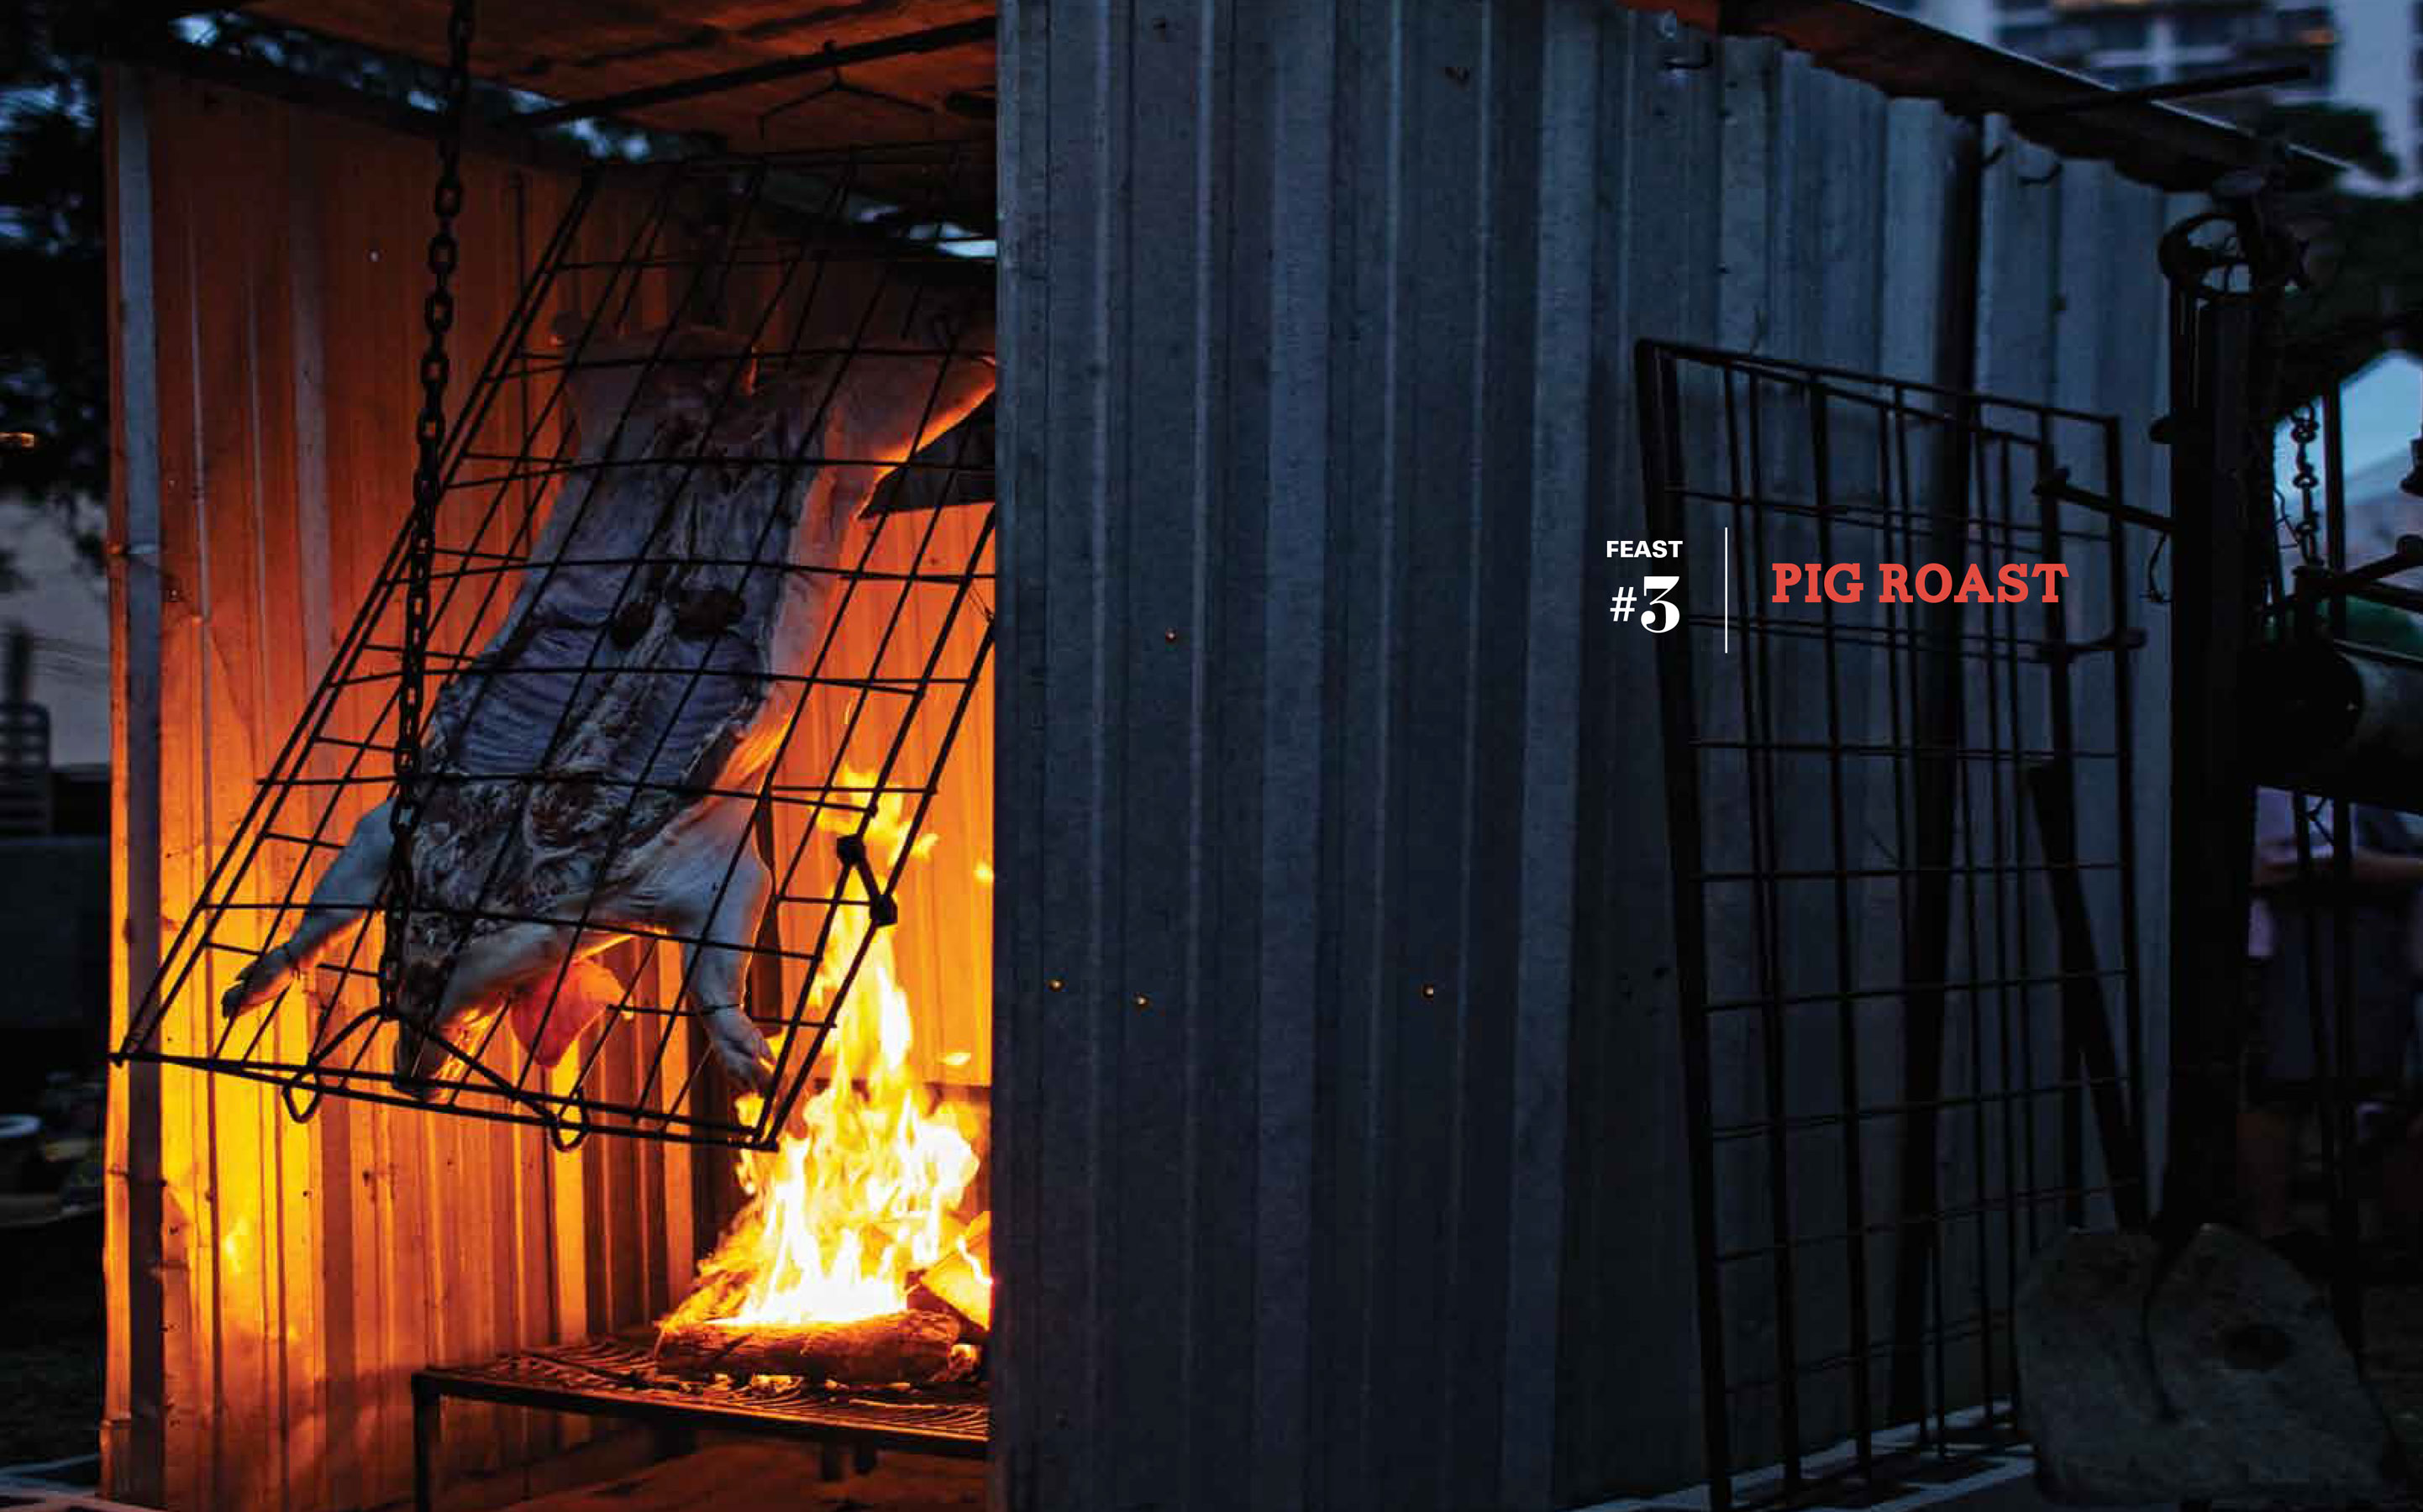 Jody Horton Photography - Whole pig roasting above a fire on a grate.